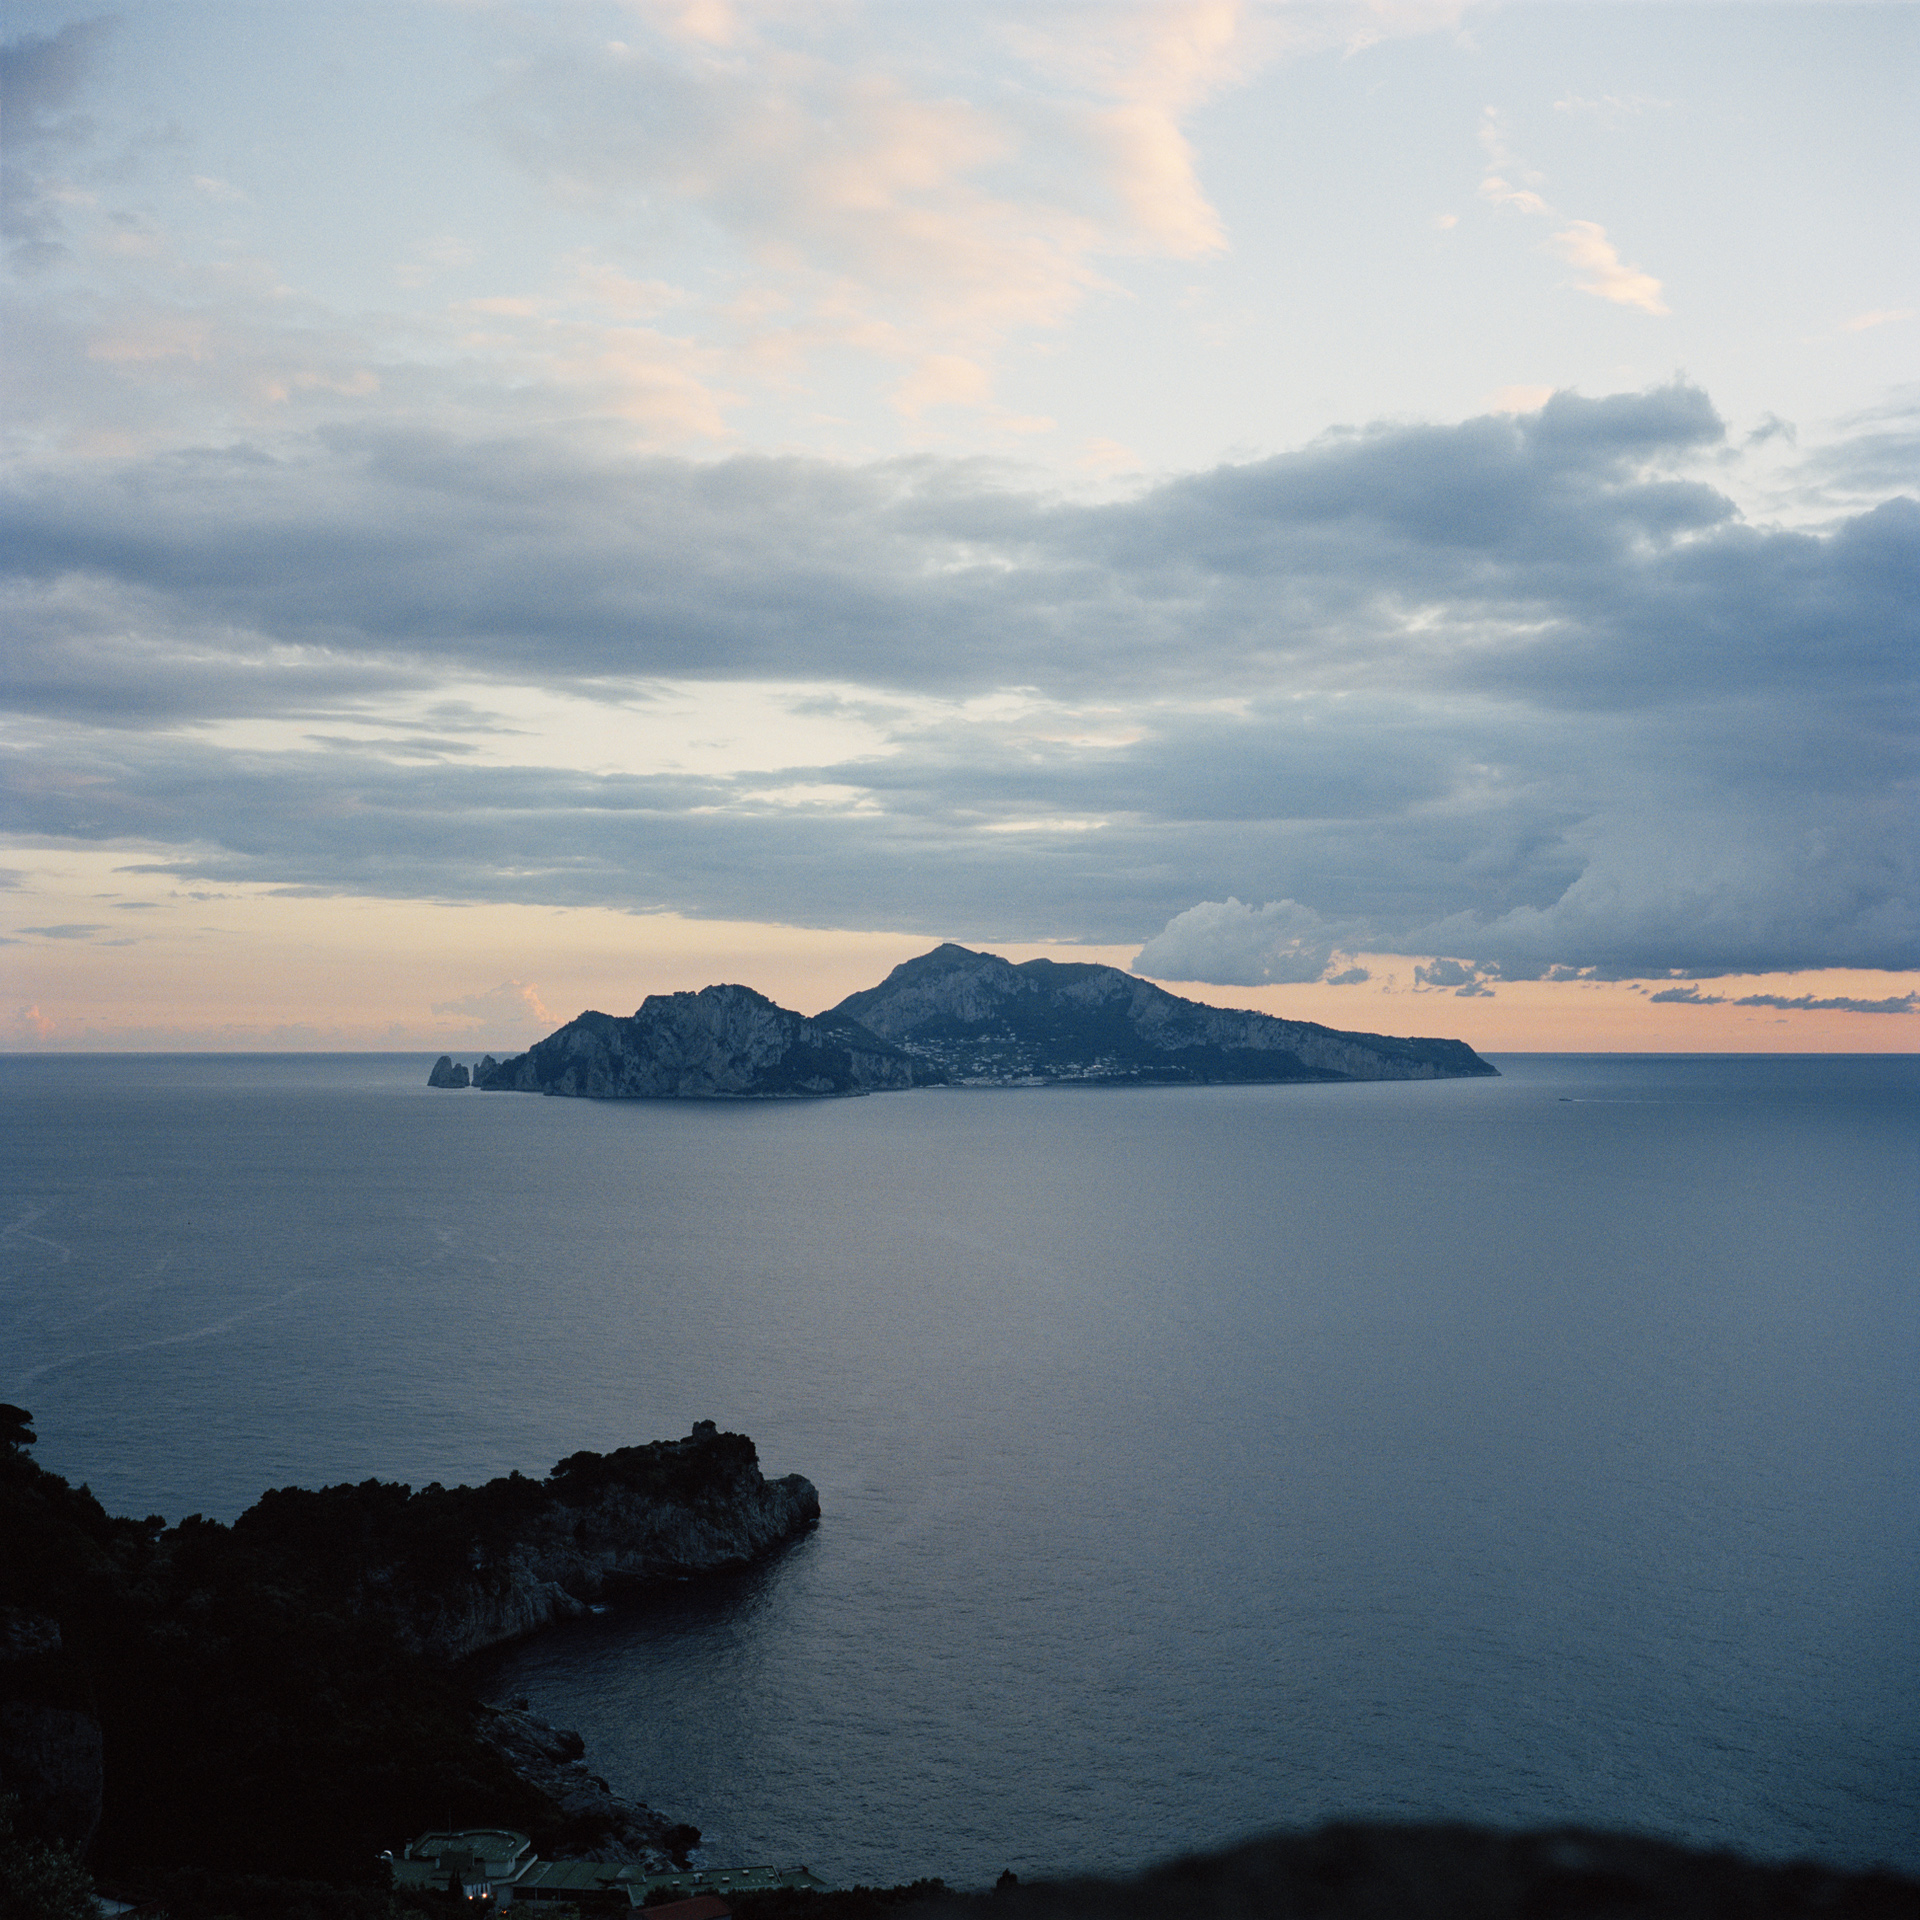 Island of Capri at dusk, photographed from Massa Lubrense.